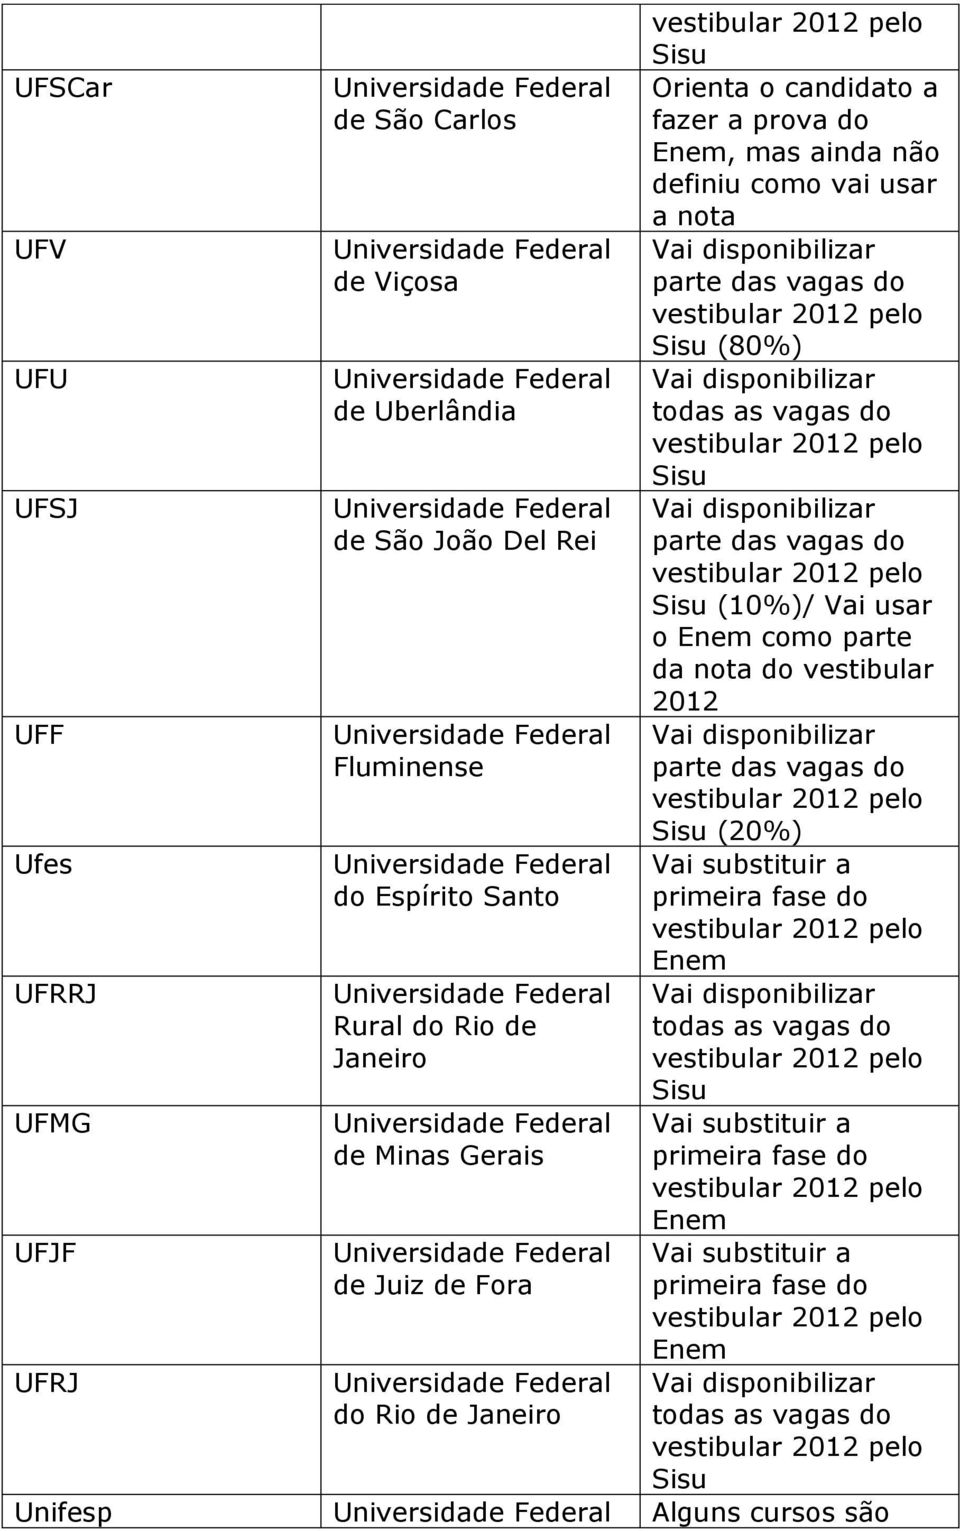 parte da nota do vestibular 2012 UFF Fluminense (20%) Ufes do Espírito Santo UFRRJ Rural do Rio